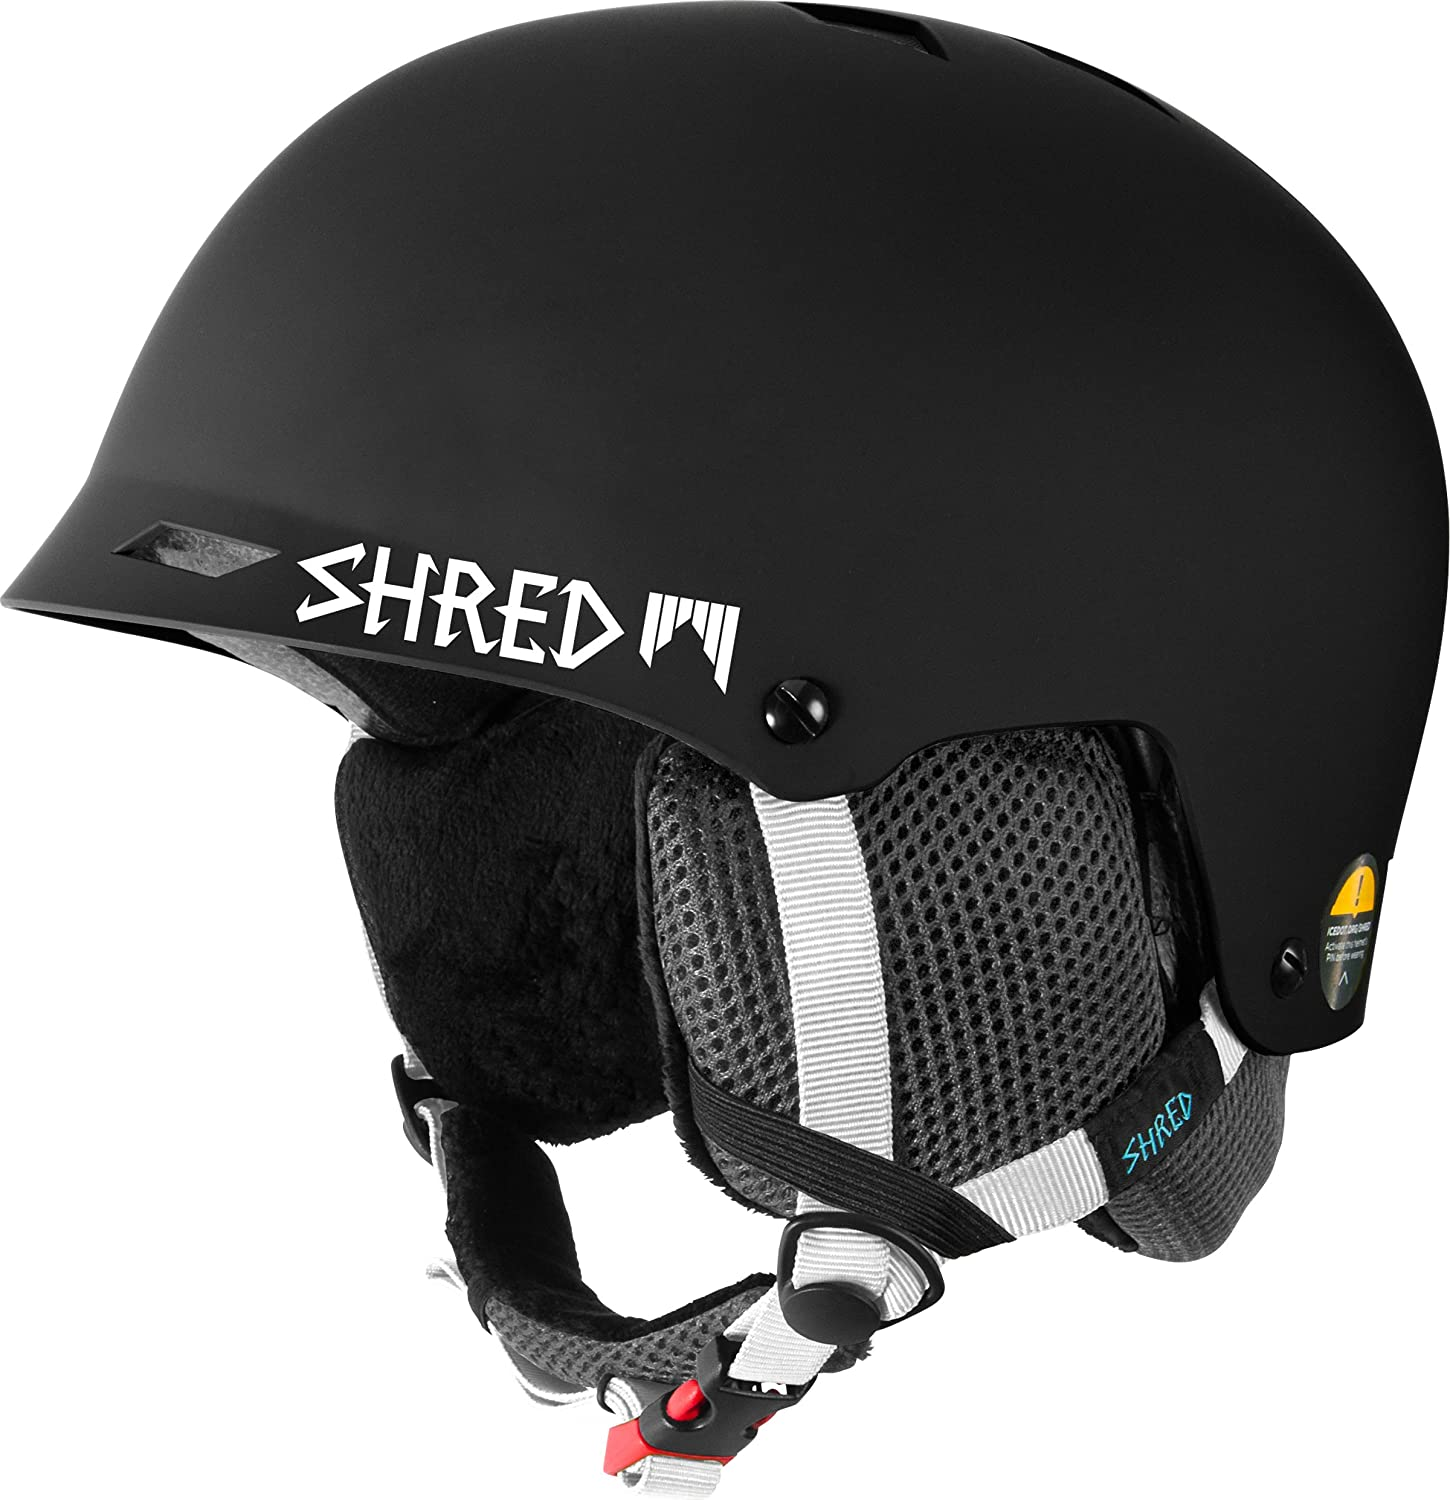 Amazon.com : Shred Ski Helmet, Snowboard Helmet, Half Brain Helmet, Half Shell, Shrasta, XS/M (52-56) : Sports & Outdoors